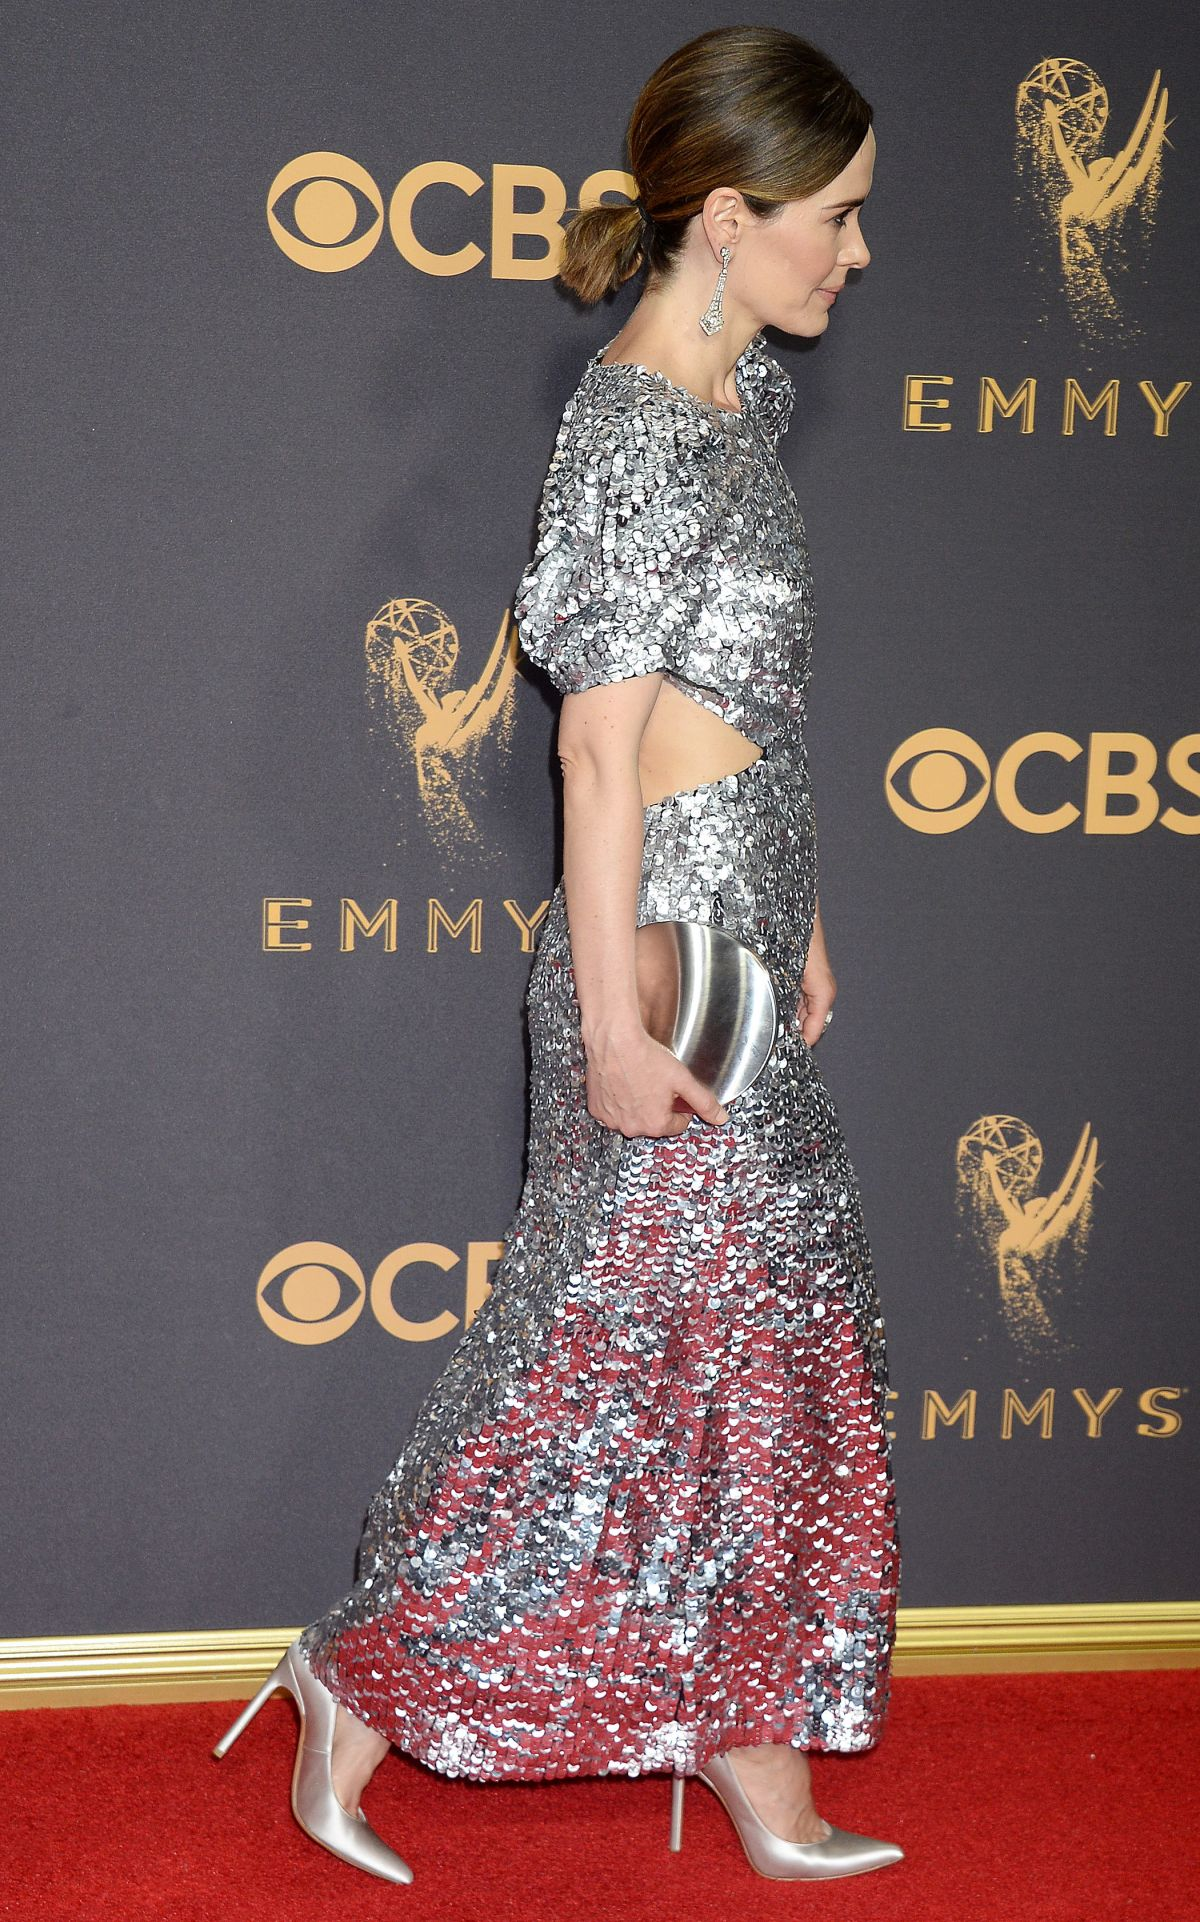 SARAH PAULSON at 69th Annual Primetime EMMY Awards in Los Angeles 09/17/2017